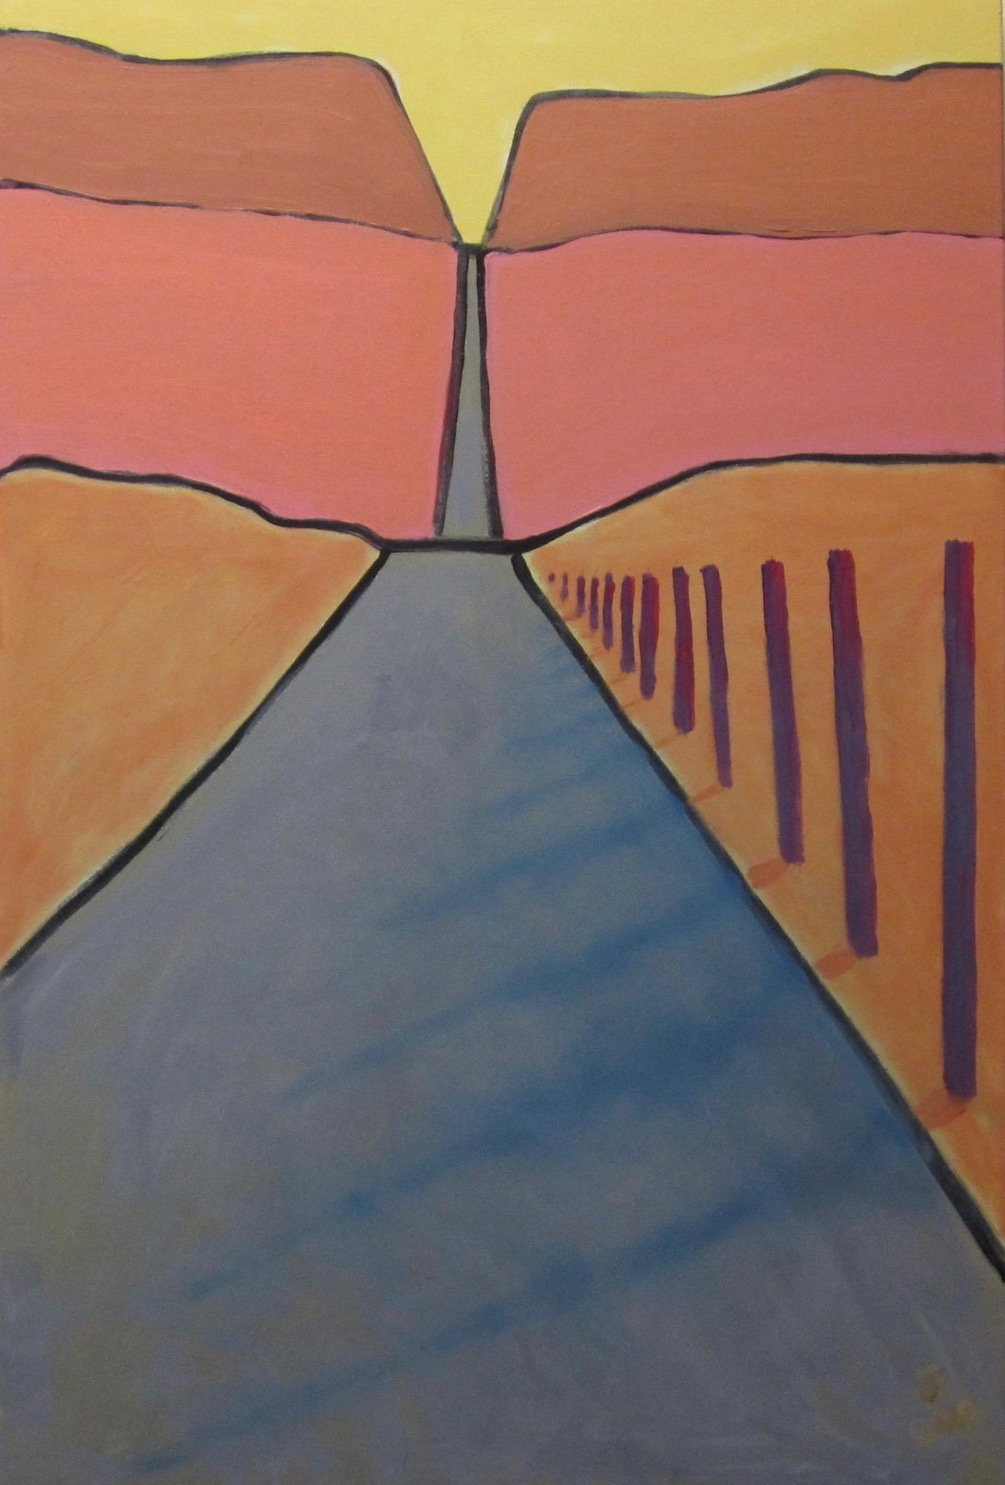 Desert Road - Oil on Canvas30 x 40Now Residing in Maine with Jack